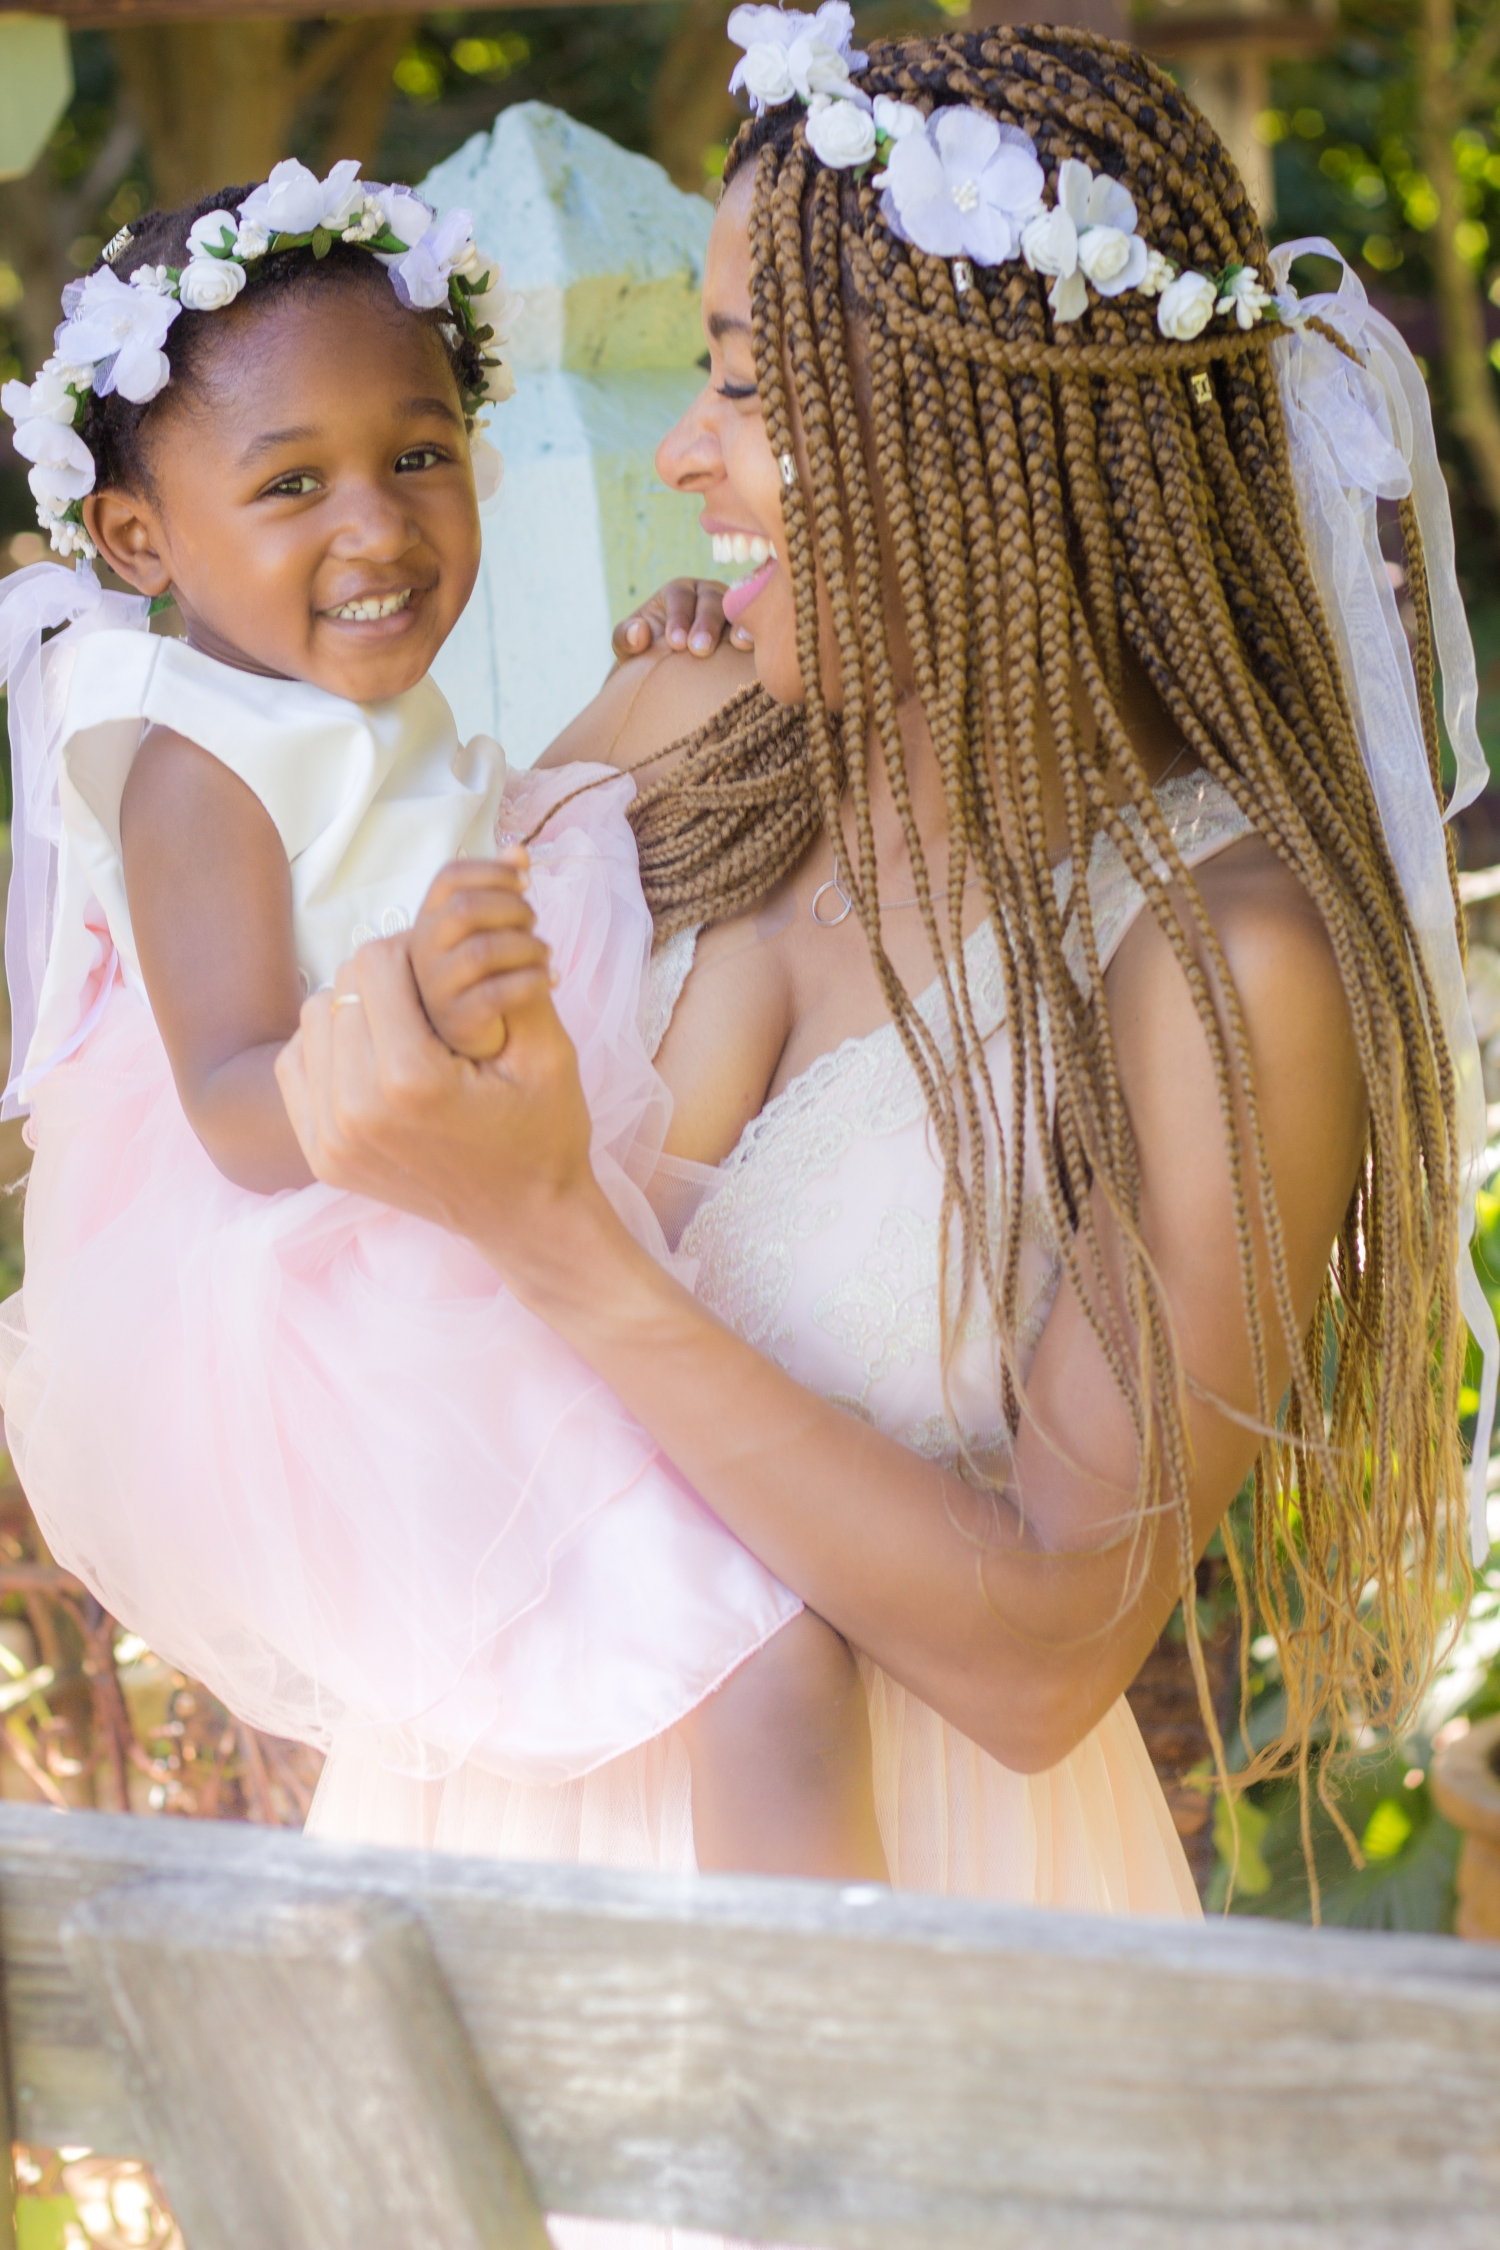 Asia_Autumn_Mommy and Me-8792-2